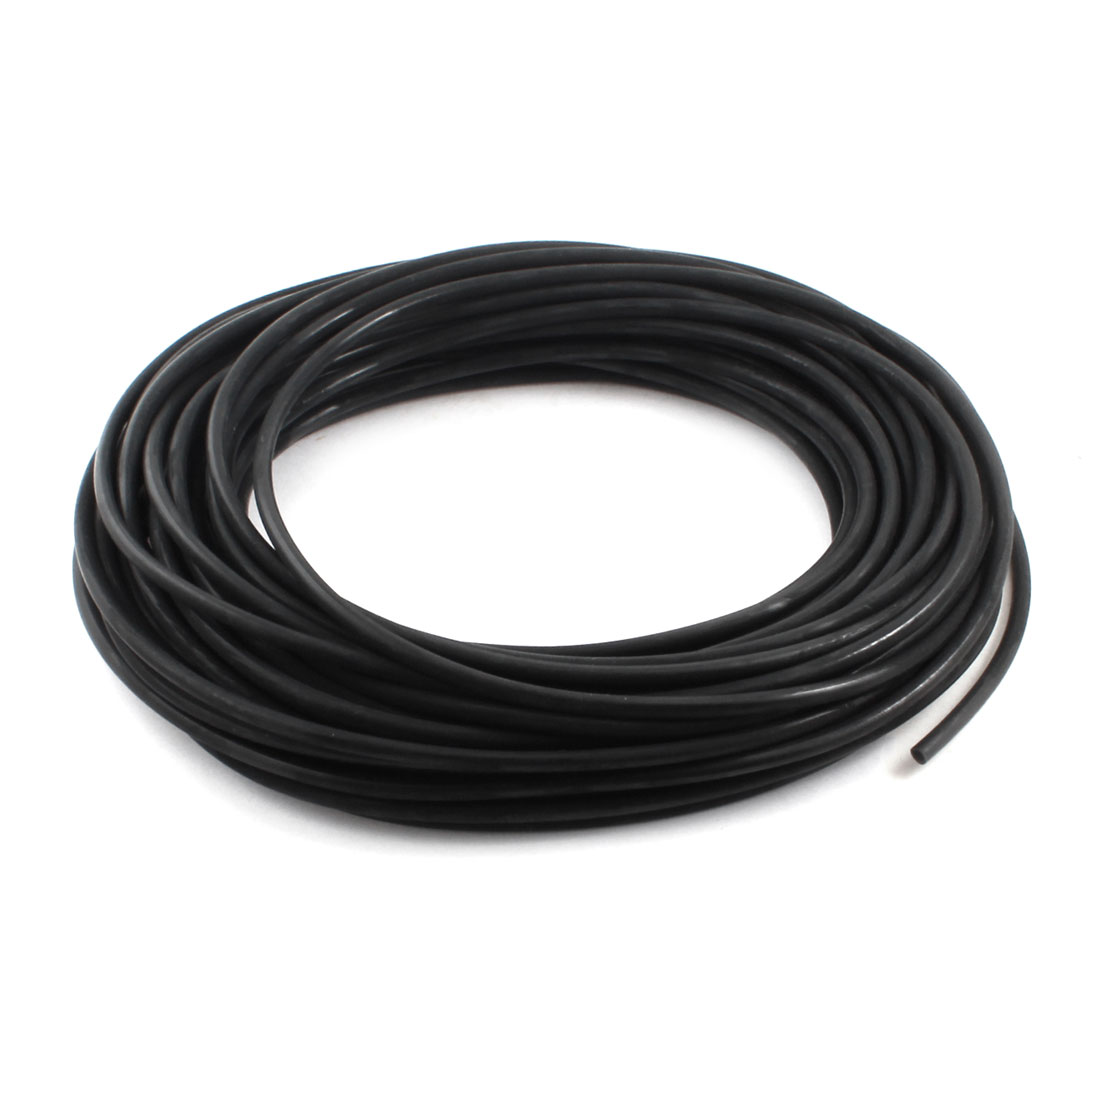 25Meter/82Ft Long 6mm x 4mm Fuel Gas Petrol Diesel Water Pipe Flexible Air PU Tube Pneumatic Hose Black